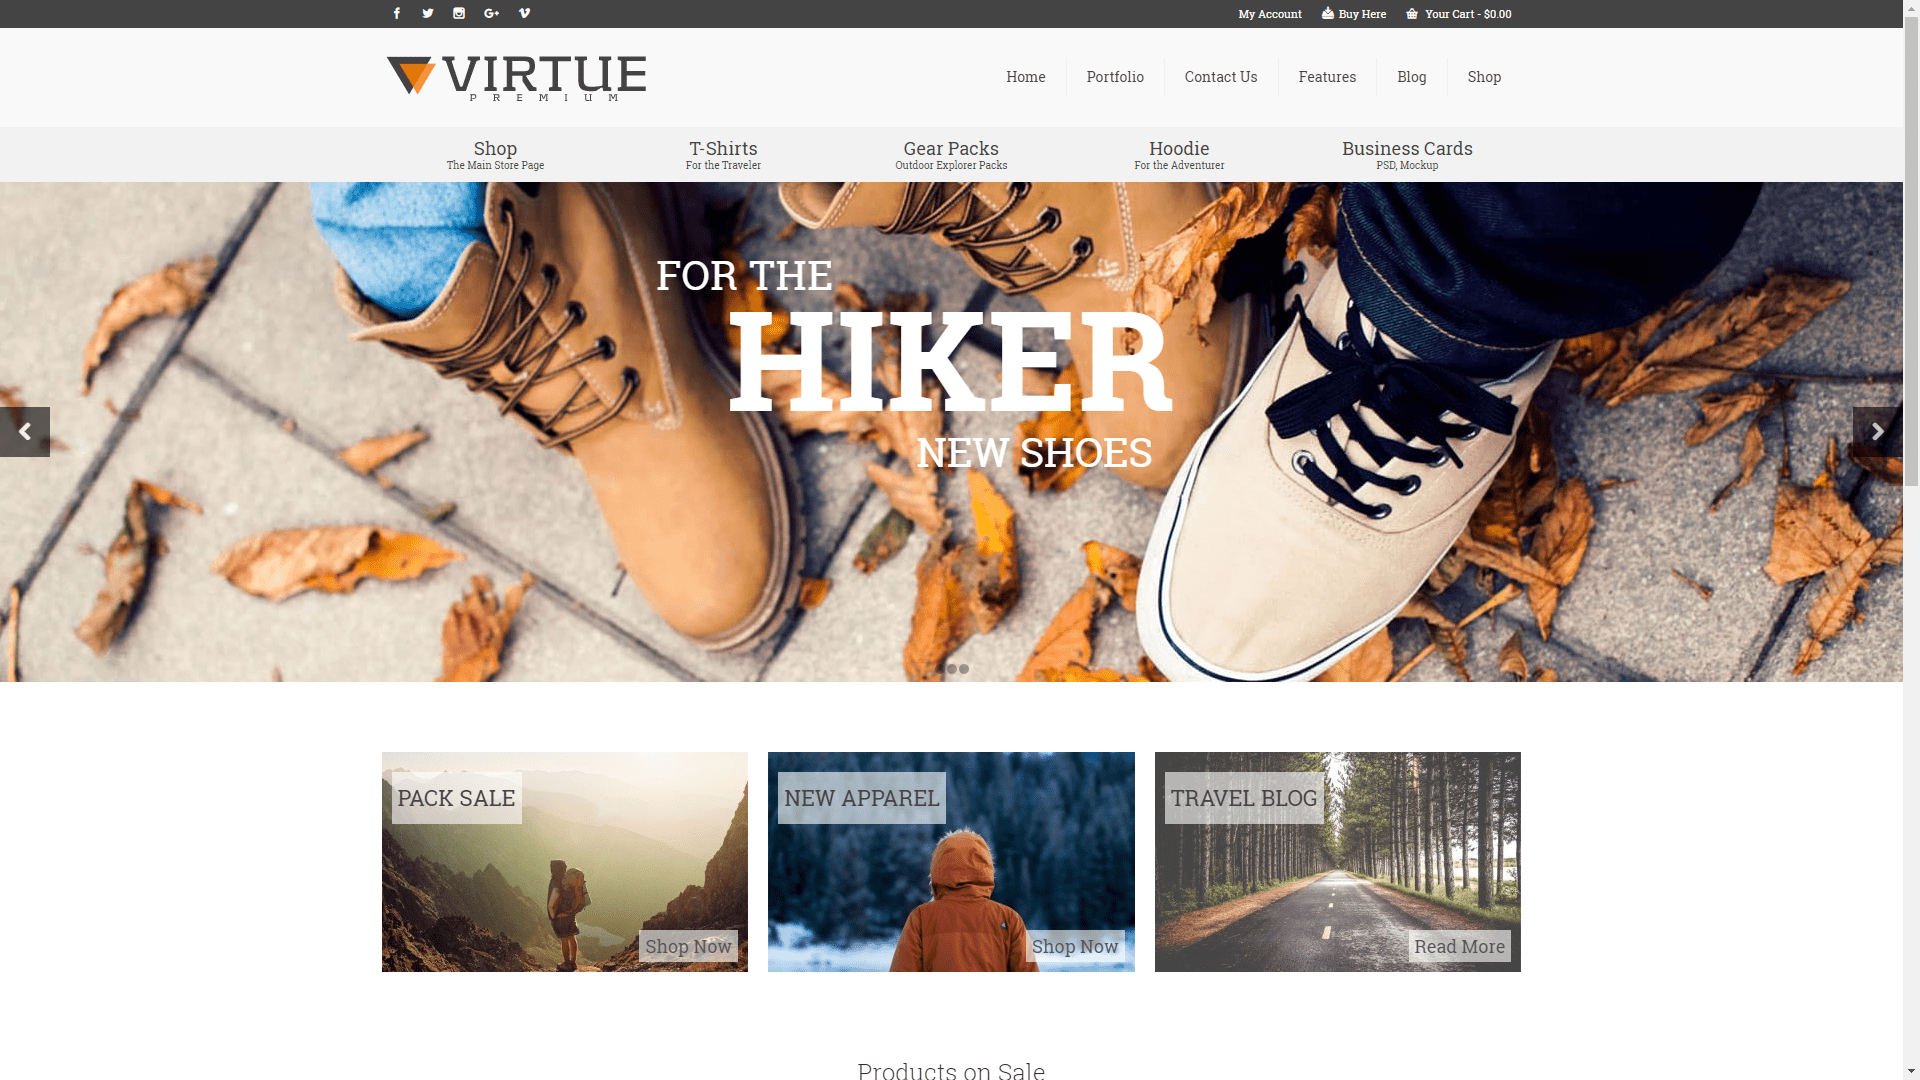 Web Design - Virtue Premium Shop - Spokane WA